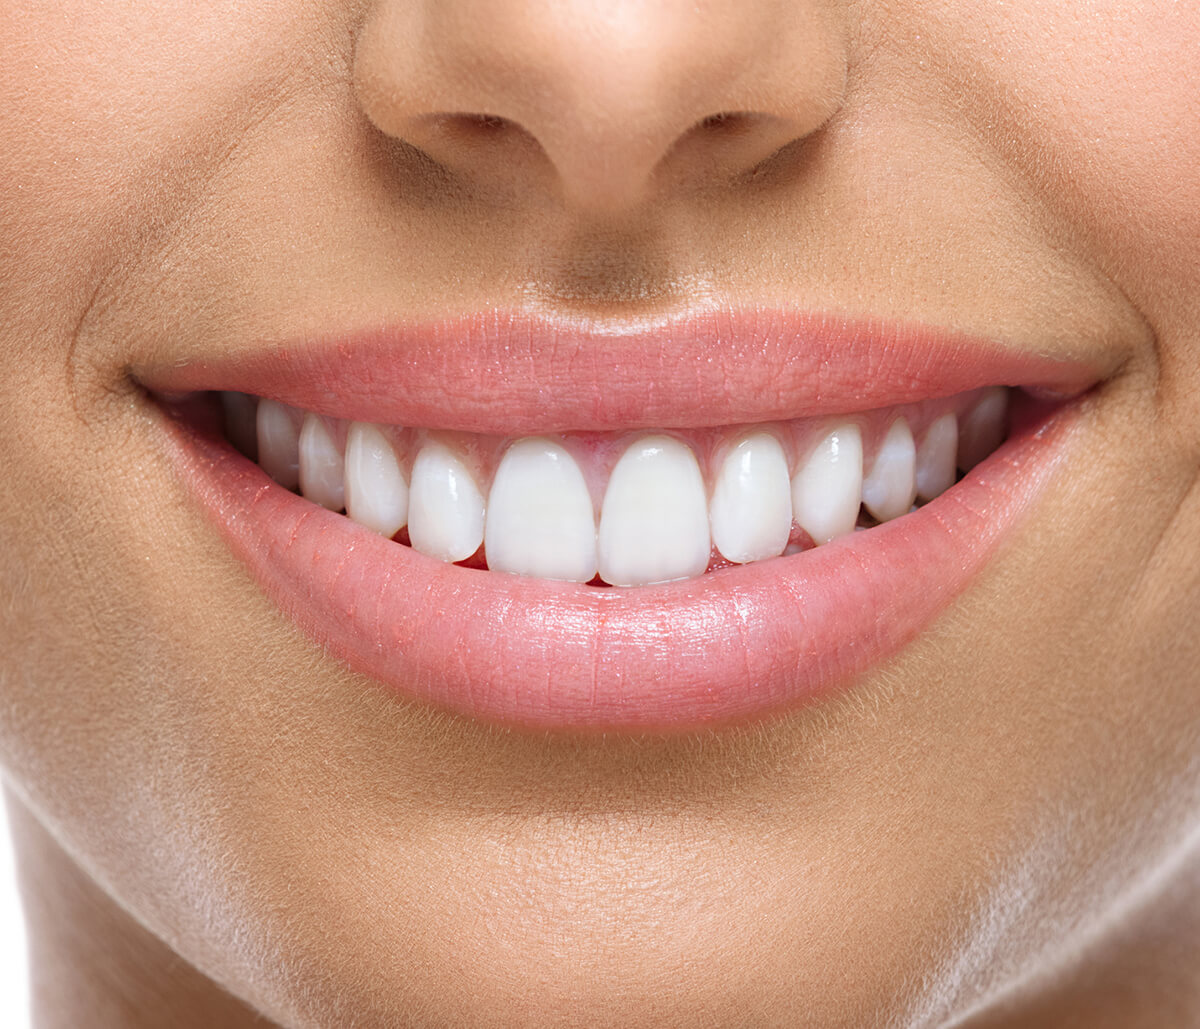 In Fort Lauderdale Area Dentist Explains how Issues in the 7th Tooth or the Second Incisor Affects Your Whole-body Health